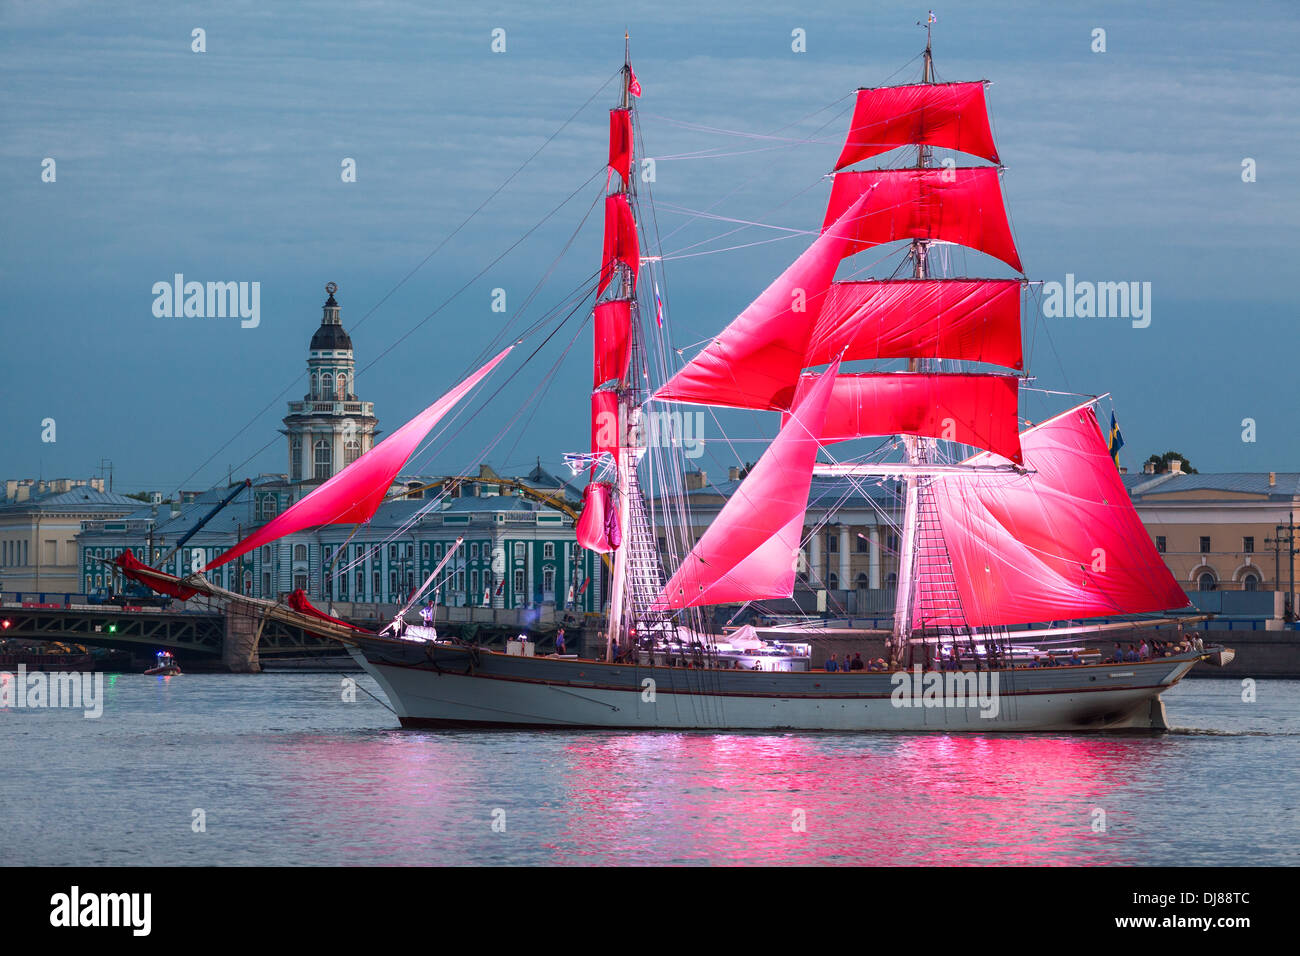 Celebration Scarlet Sails show during the White Nights Festival, St. Petersburg, Russia. Ship near Palace bridge - Stock Image